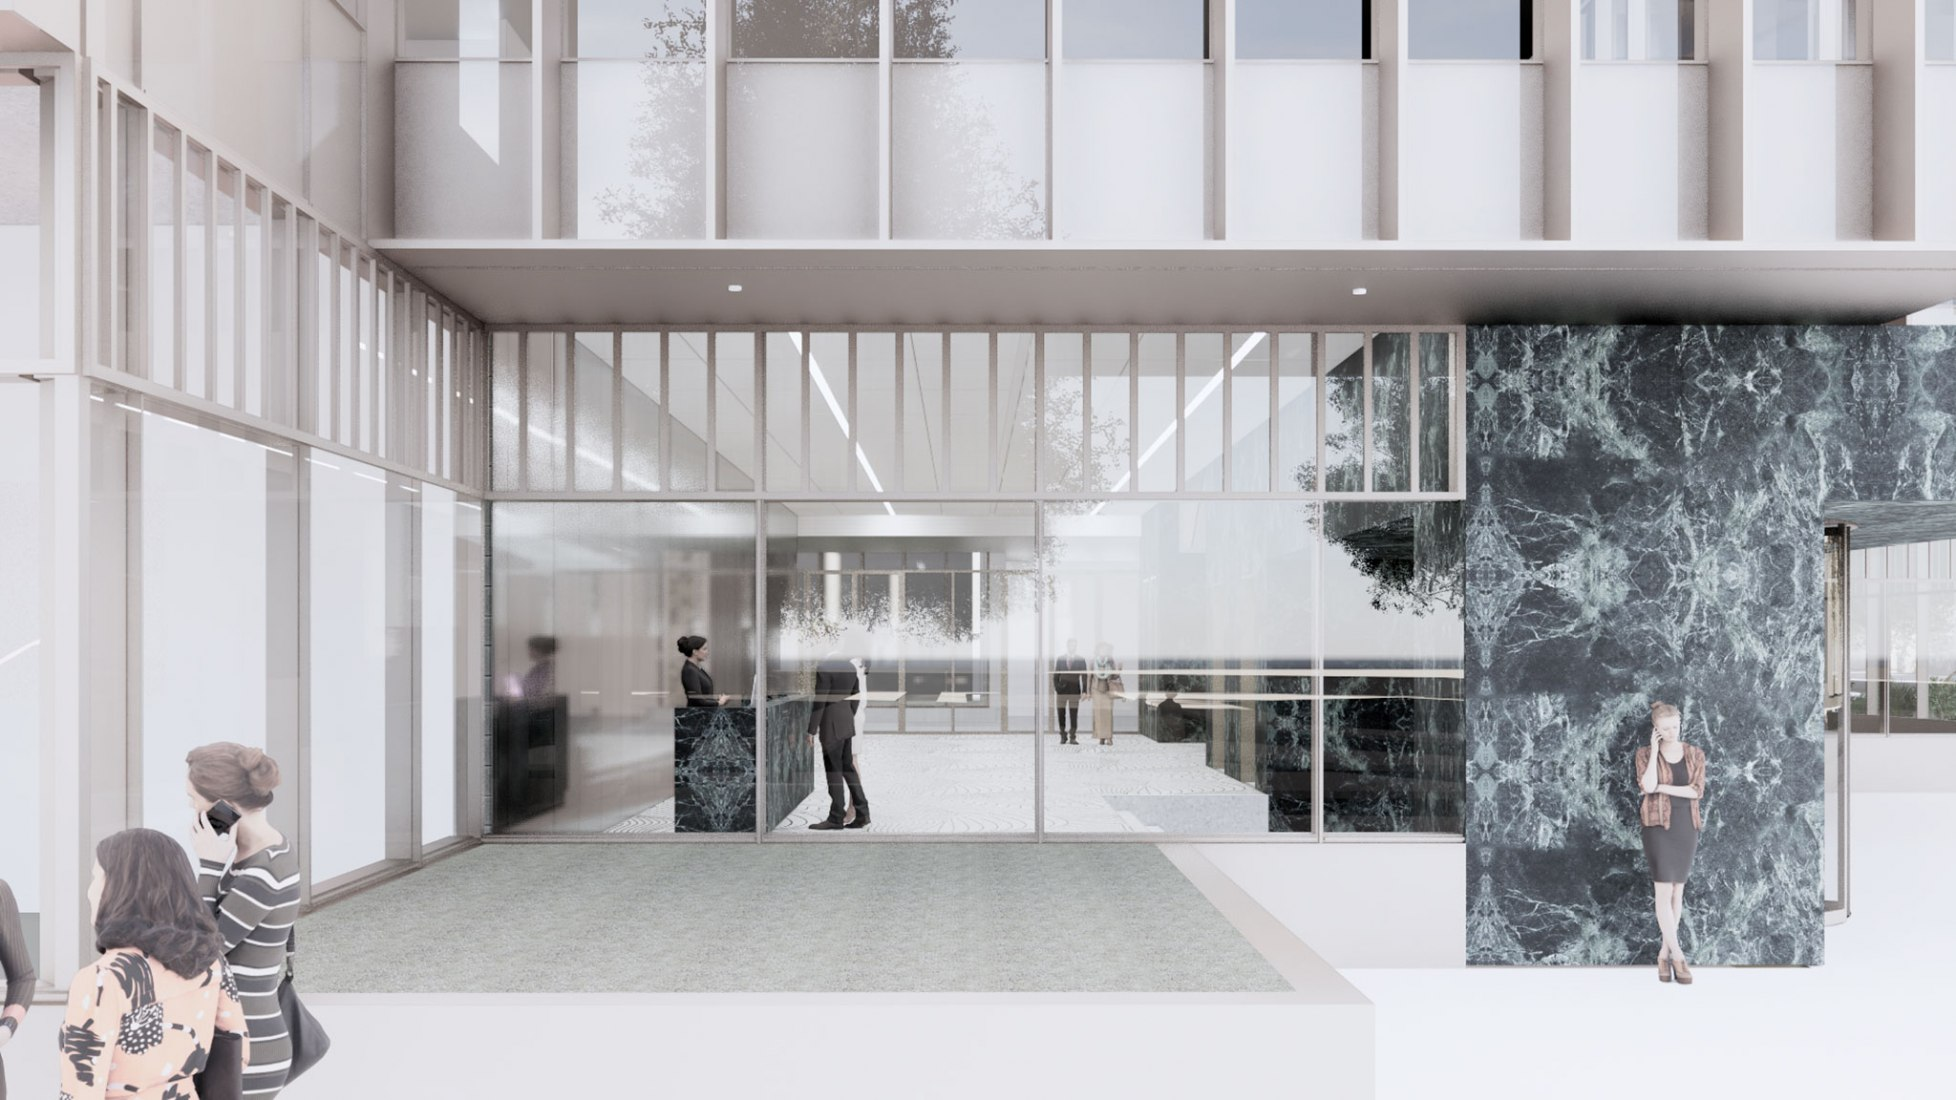 ApollolaanRendering. Apollolaan building by OMA. Image courtesy of OMA